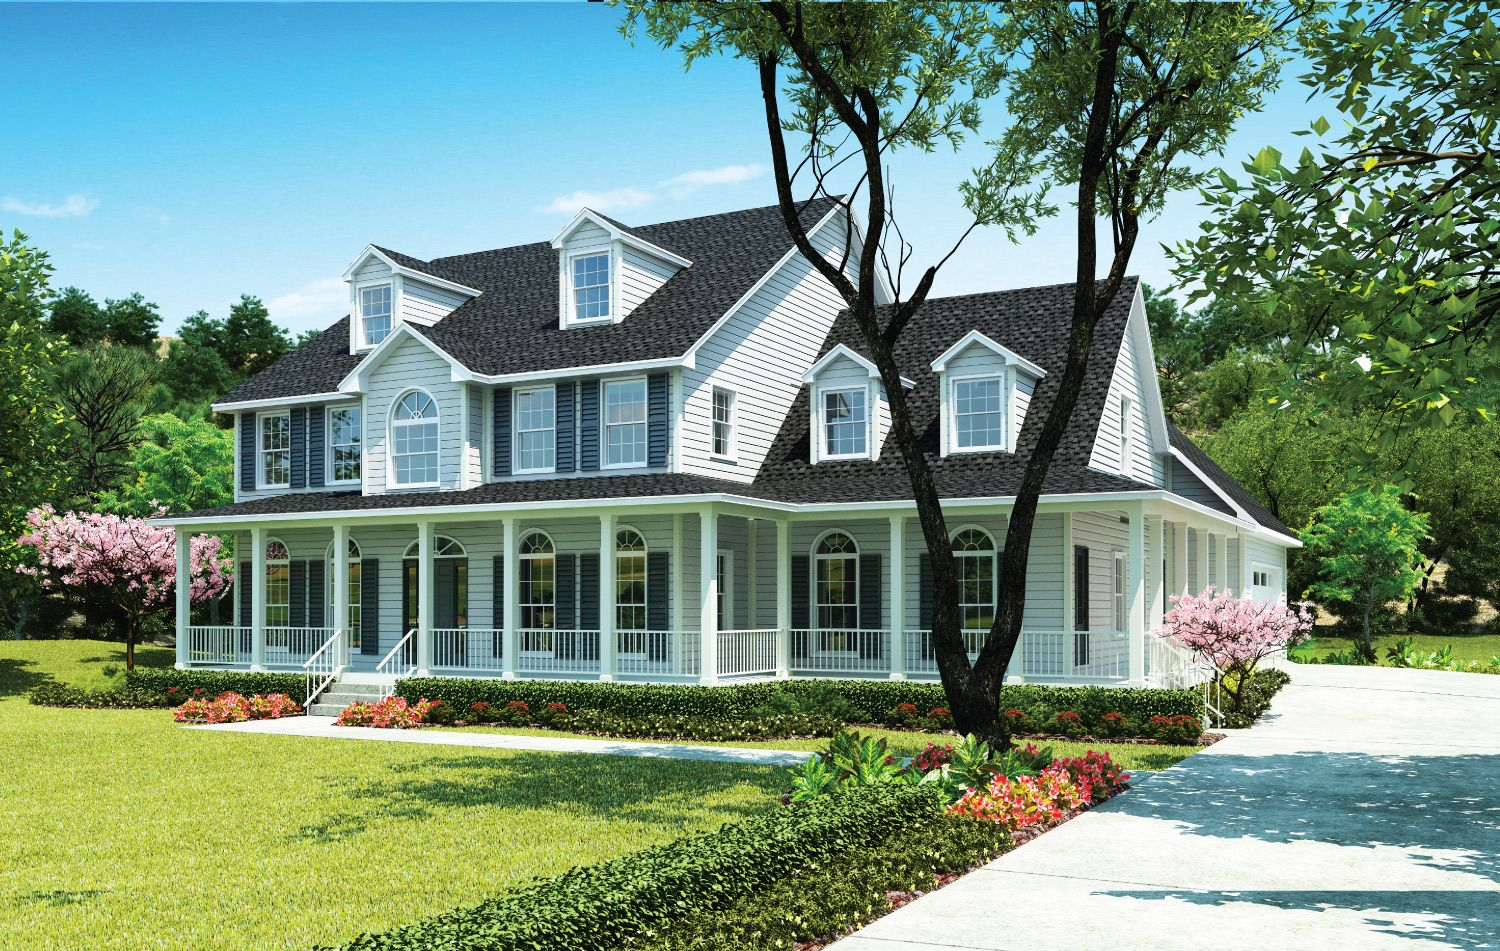 Single Family for Active at Build On Your Lot Monroe Building Center - Hanover A 2608 Executive Point Dr Monroe, North Carolina 28110 United States